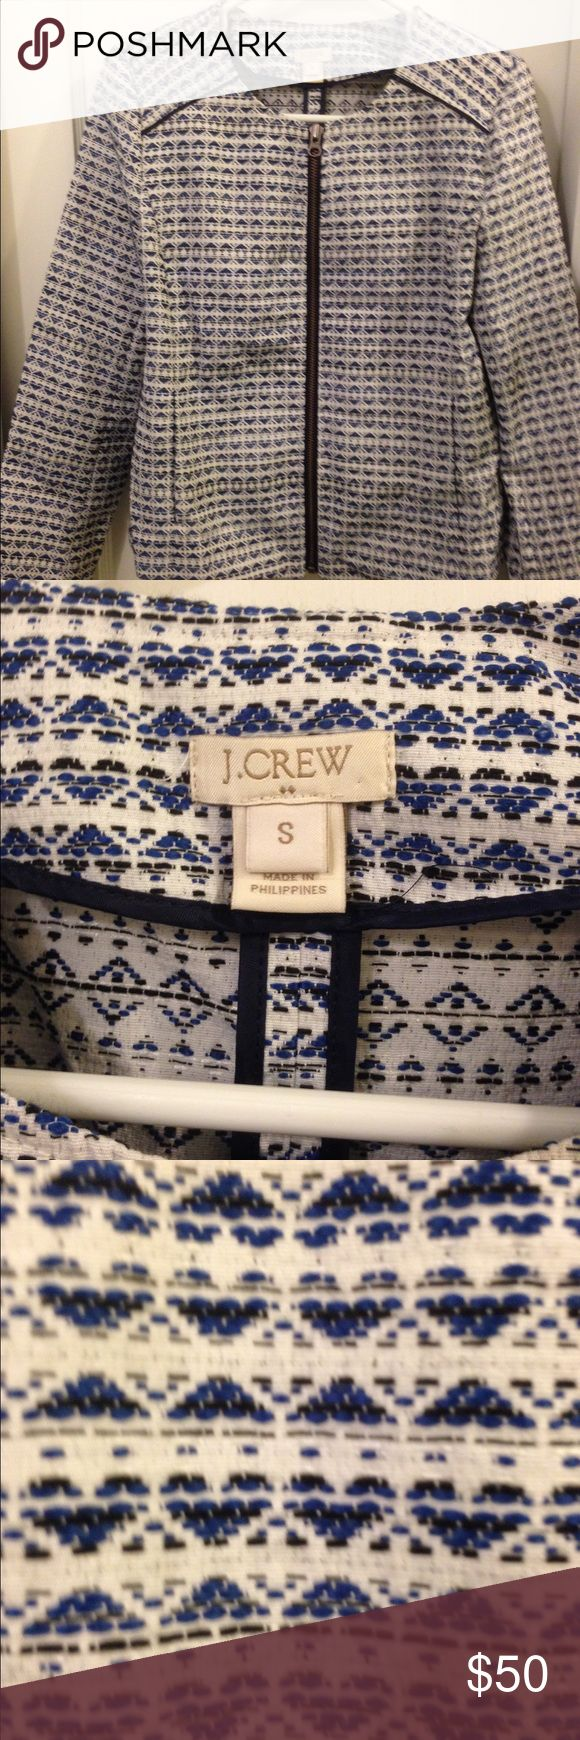 Jcrew jacket Jcrew zip up jacket in blue and white print looks brand new only worn once J. Crew Jackets & Coats